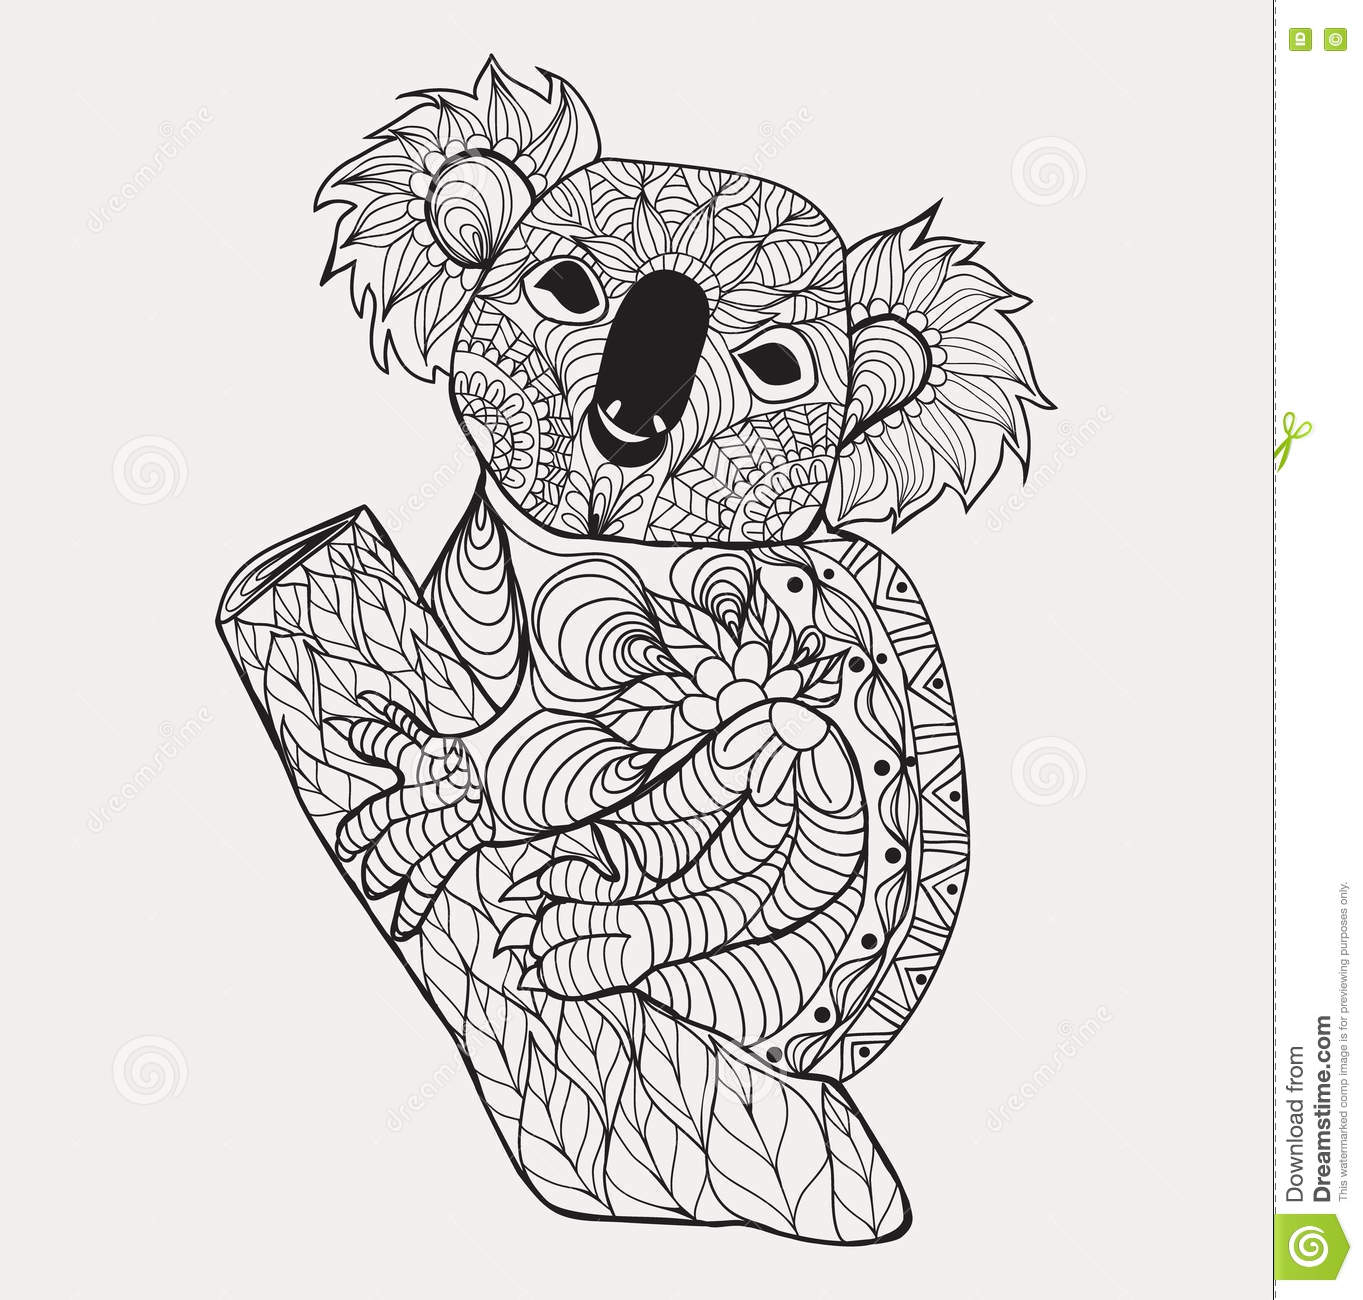 Drawing zentangle koala for coloring page shirt design for Decoration drawing